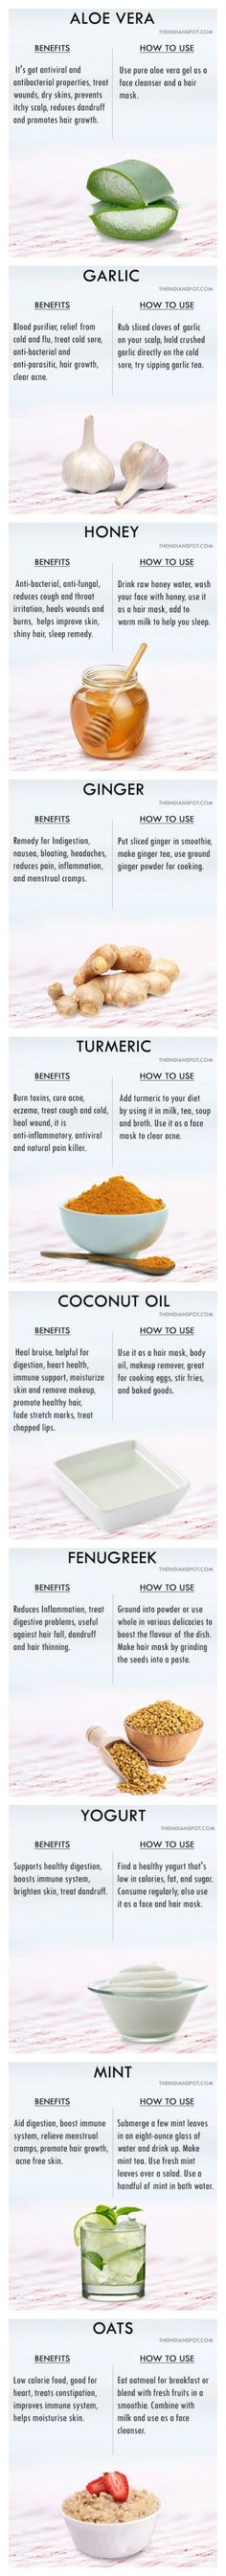 Have you tried these natural cures?